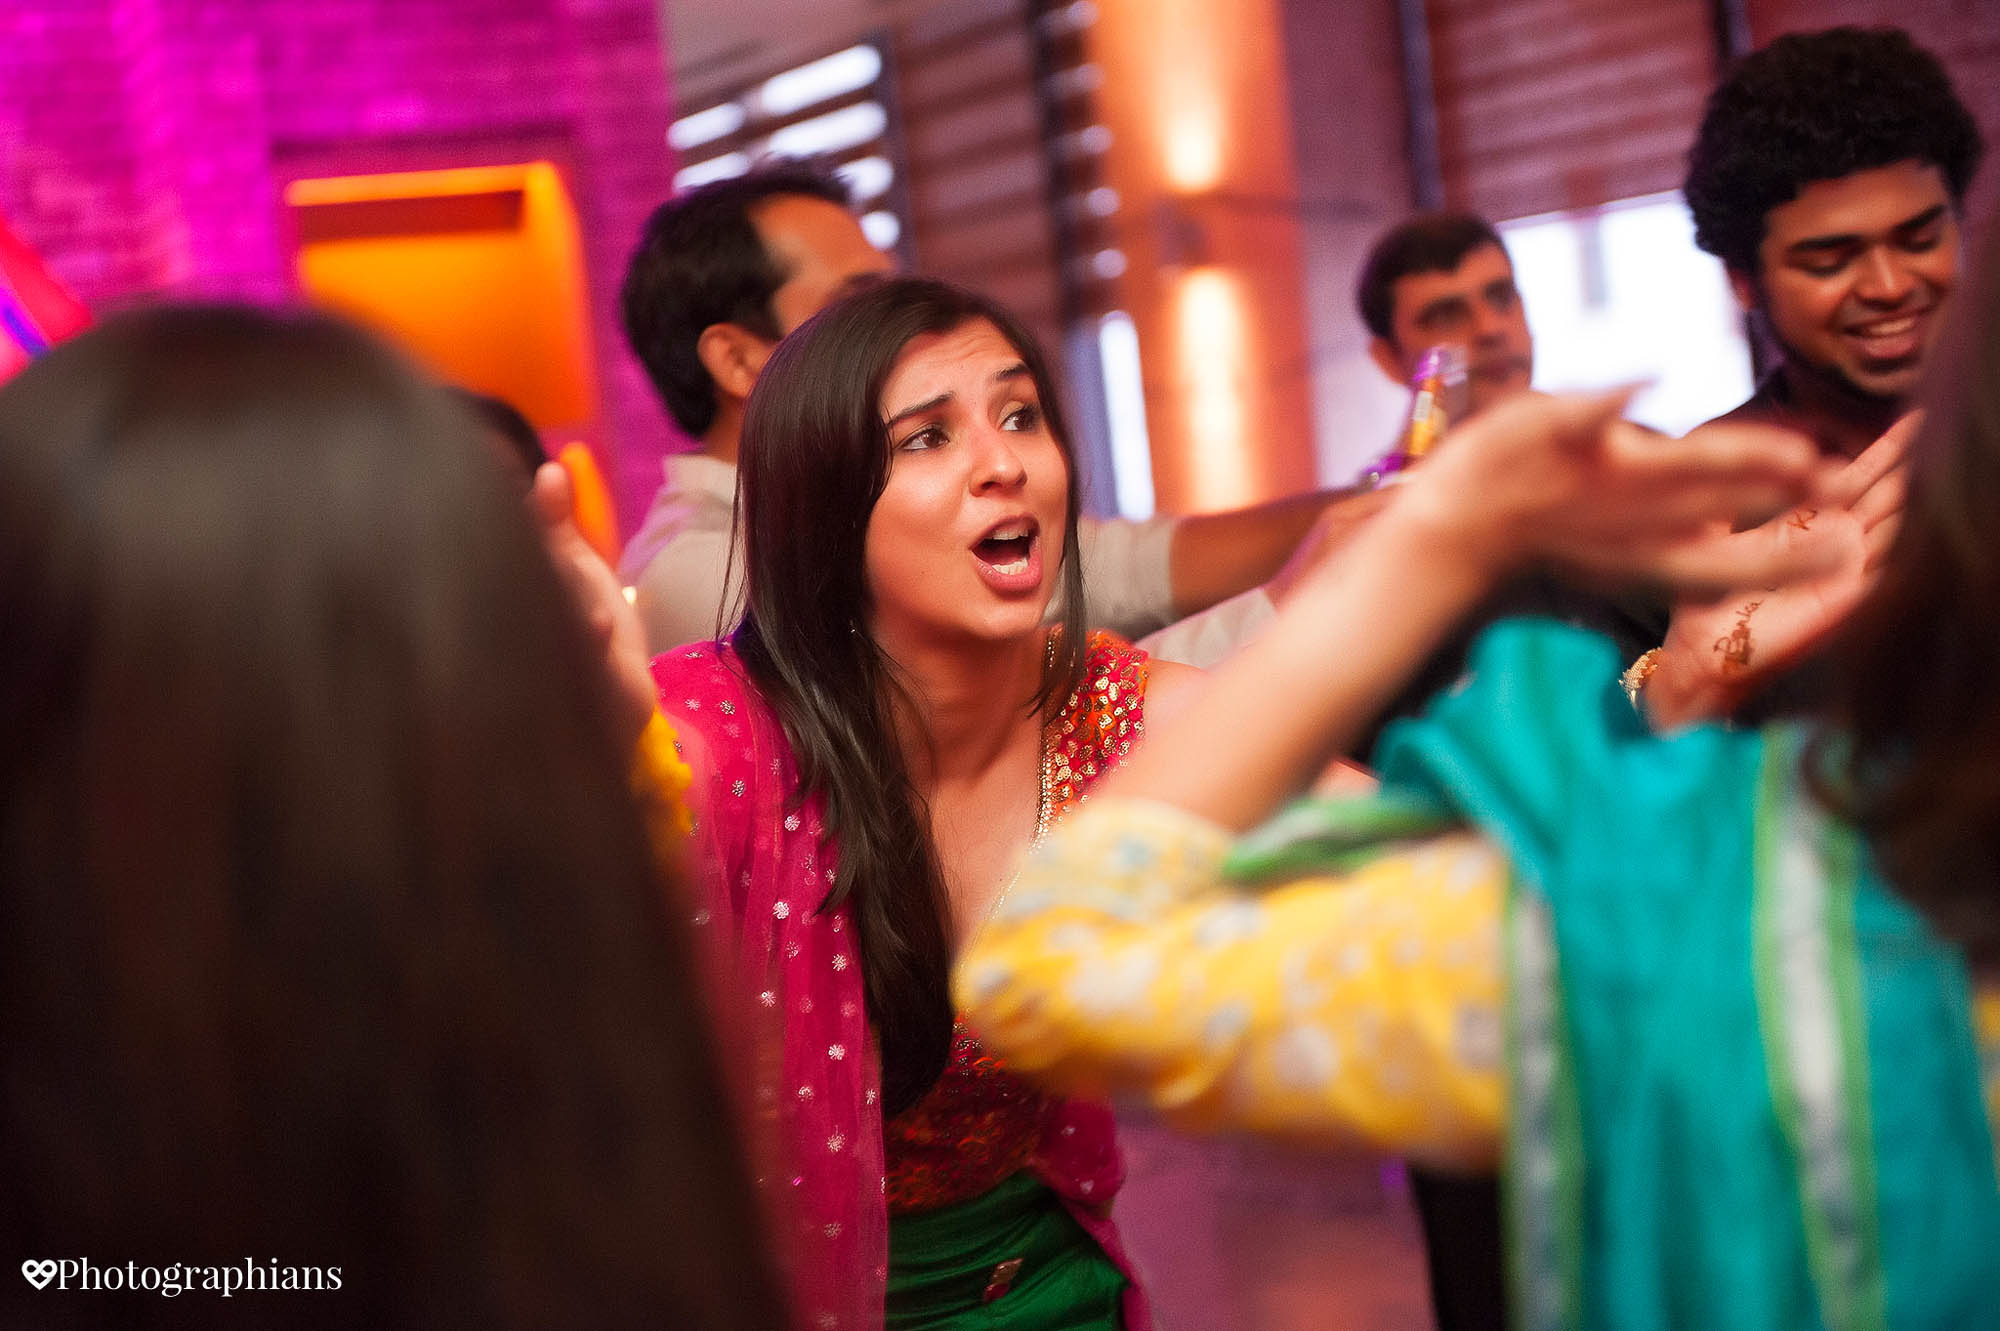 Punjabi_Marwari_Wedding_Kolkata_Photographians_-VIDHI-6